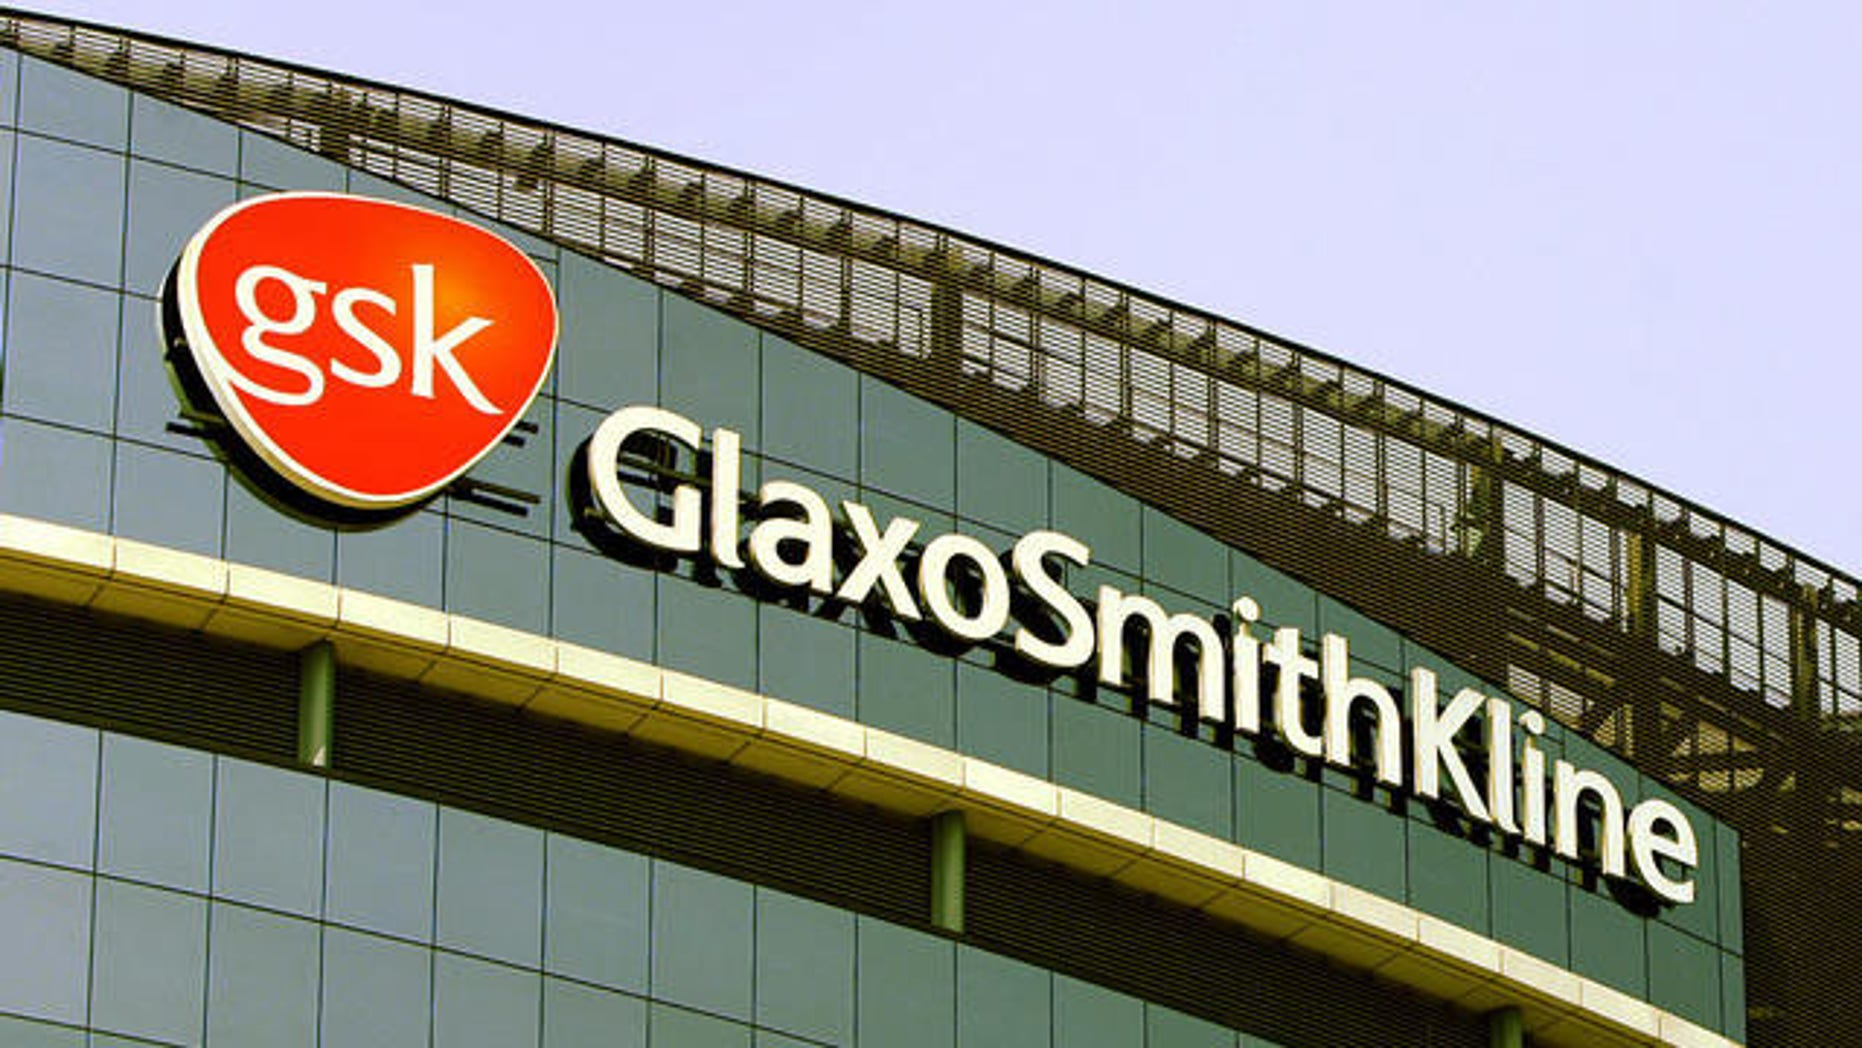 October 8, 2013: GlaxoSmithKline, based in London, is developing the world's first anti-malaria vaccine (AP Photo)